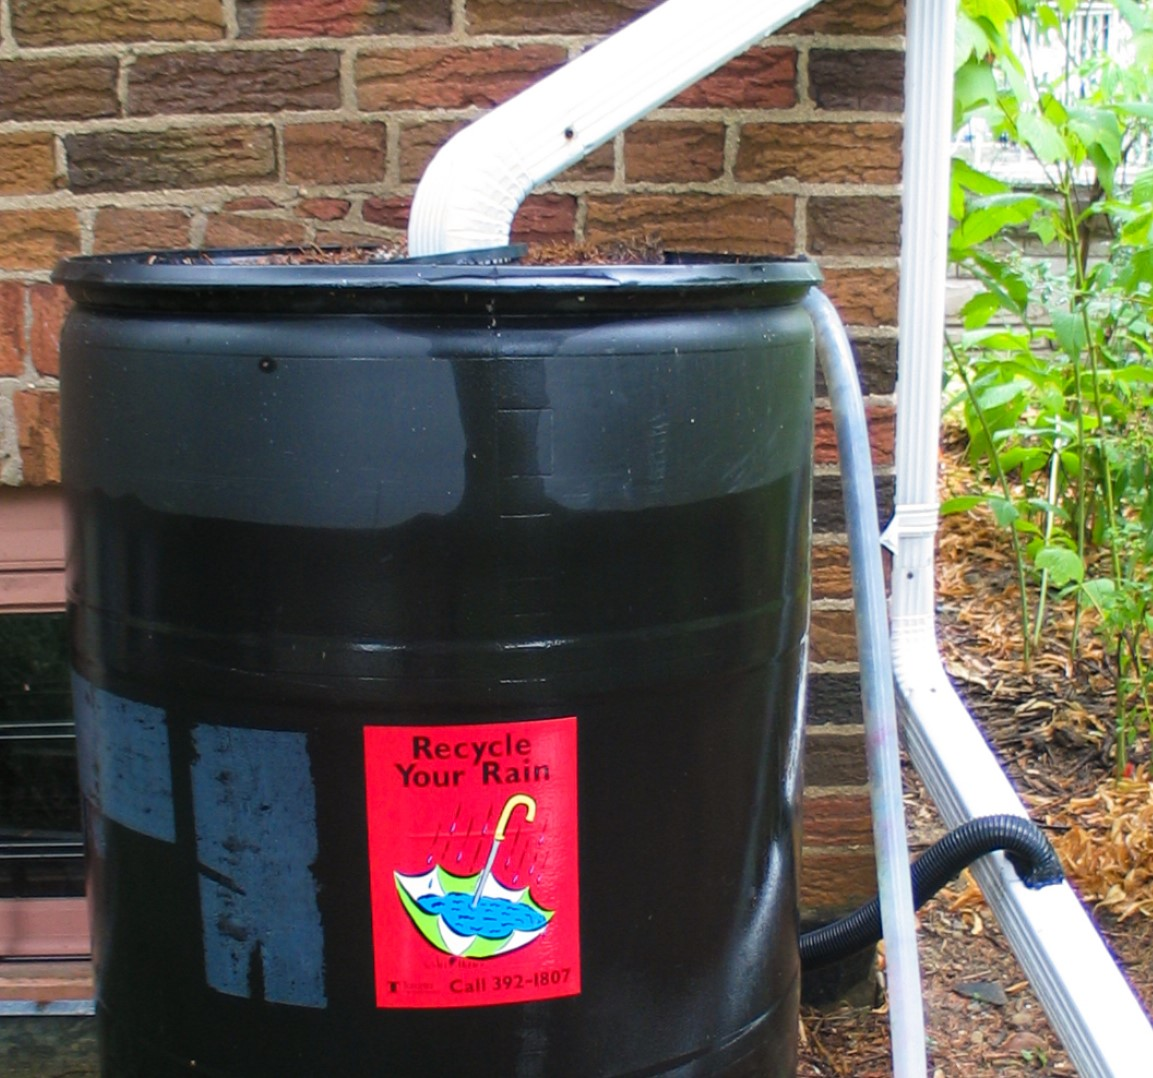 This image shows a black rain barrel against a red brick wall with a white aluminium downspout connected at the top of the barrel. A 2-inch diameter black overflow hose is seen connecting from the rain barrel to another section of downspout.